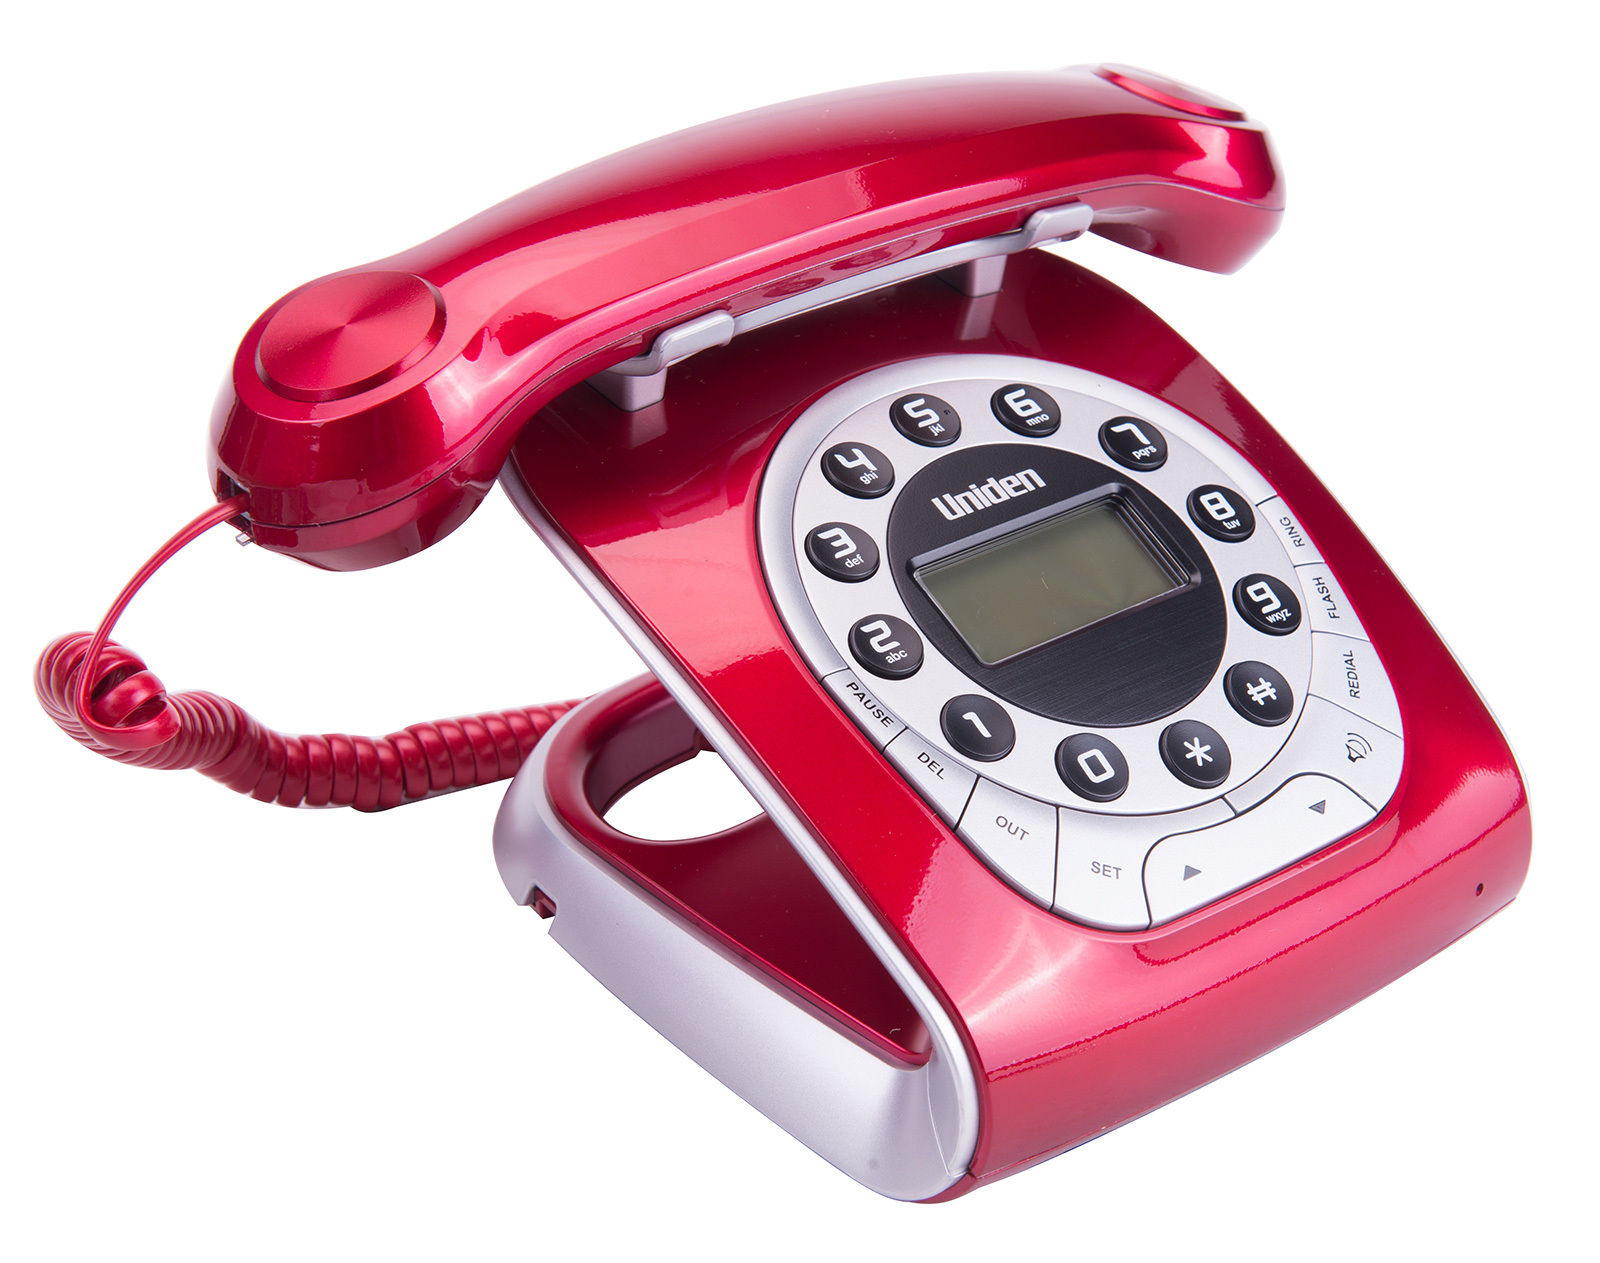 UNIDEN MODRO 15 RED RETRO STYLE CORDED PHONE [MODRO 15